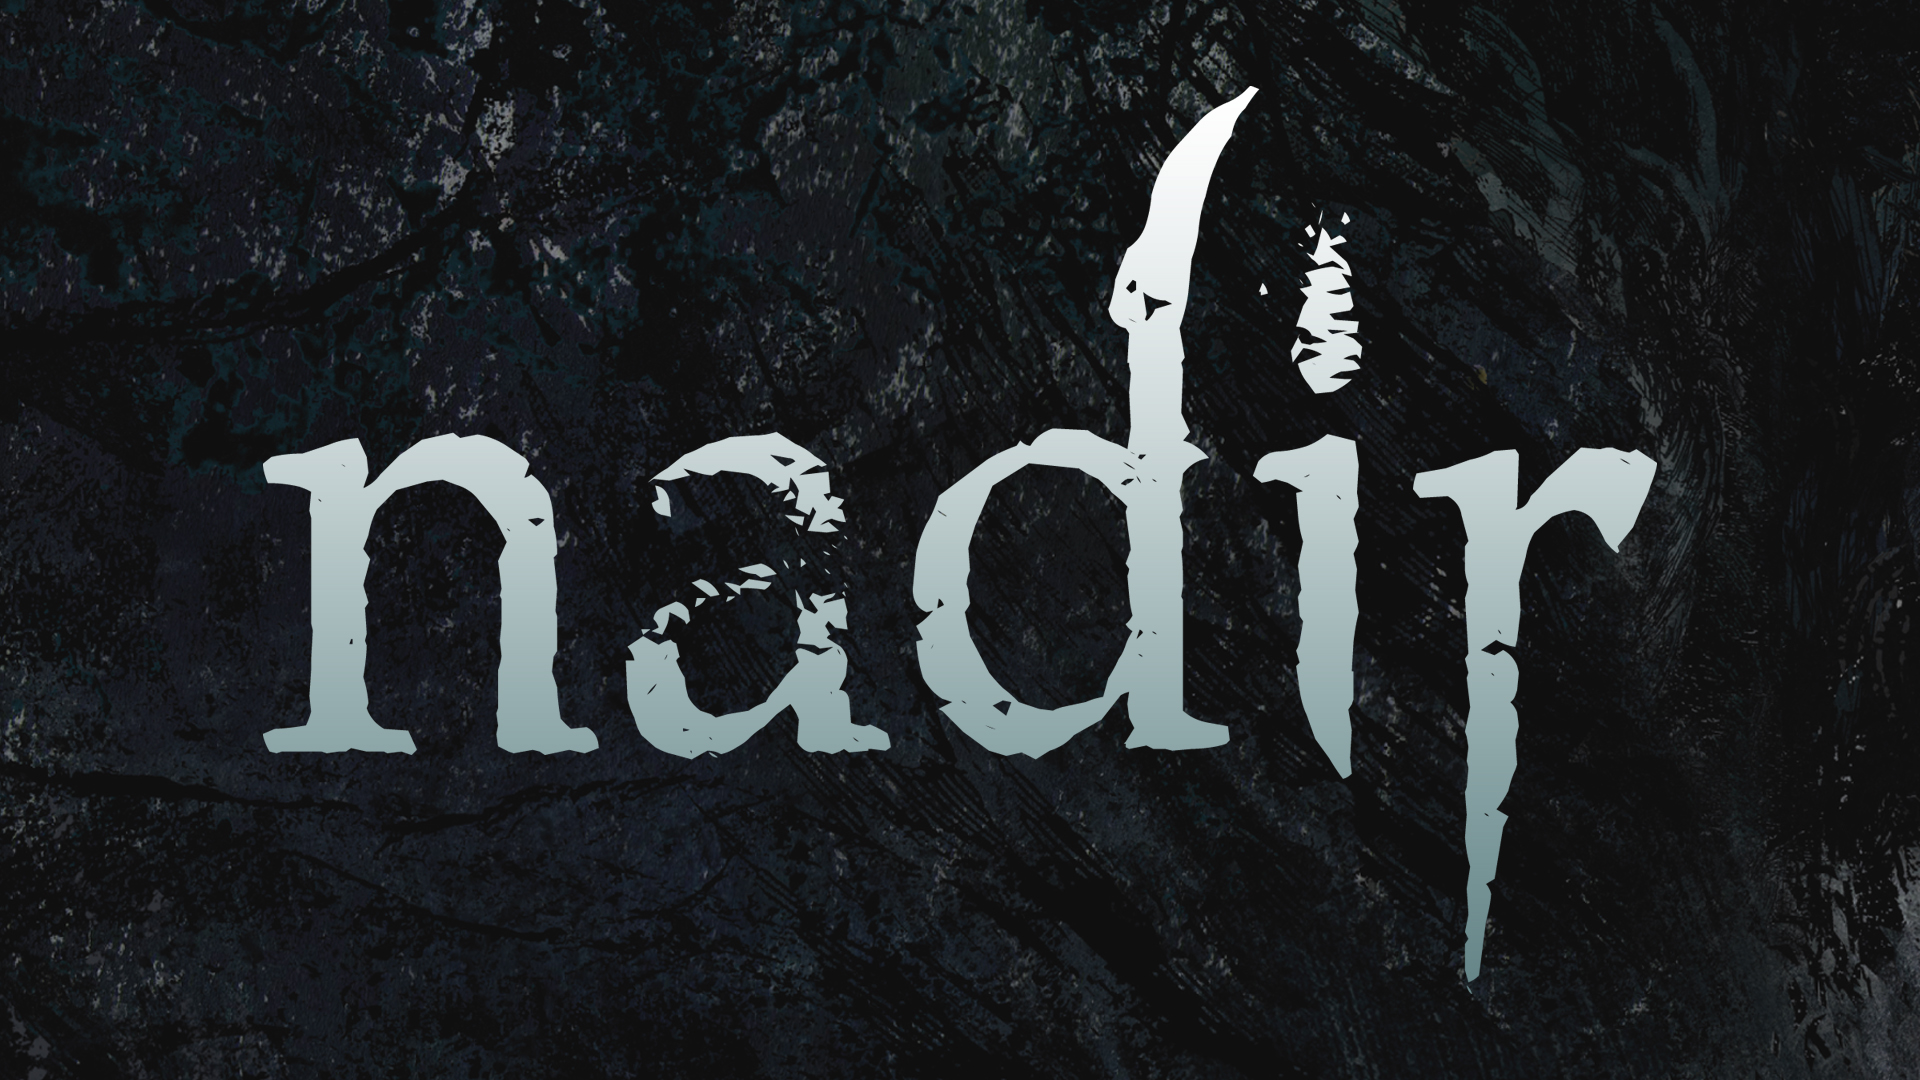 Nadir logo, Nadir, Nadir band, Nadir Hungary, death metal, doomcore, Satanath Records, Grimm Distribution, NGC Prod, Aleksey Korolyov, sickandsound, death metal album review, doomcore album review, Nadir The Sixth Extinction review, Nadir The Sixth Extinction recensione, an interview with Nadir, Nadir interview, Listen to Nadir The Sixth Extinction, Stream Nadir The Sixth Extinction, Viktor Tauszik, Norbert Czetvitz, Hugó Köves, Ferenc Gál, Szabolcs Fekete, Tenacity, Those Who bought The Rain, The Underground Heroes cover album, A Lasting Dose of Venom EP, Ventum iam ad finem est, The Sixth Extinction, Imre Madách The Tragedy Of Man, The Human Predator, The Debris Archipelago, Fragmented, Along Came Disruption, Mountains Mourn, Ice Age In The Immediate Future: I. Arctic, Ice Age In The Immediate Future : II. To Leave It All Behind, Ice Age In The Immediate Future : III. A Matter Of Survival, Les Ruines, nadirmetal, nadirhungary, Ice Age in the Immediate Future trilogy, An interview with Victor Tauszik